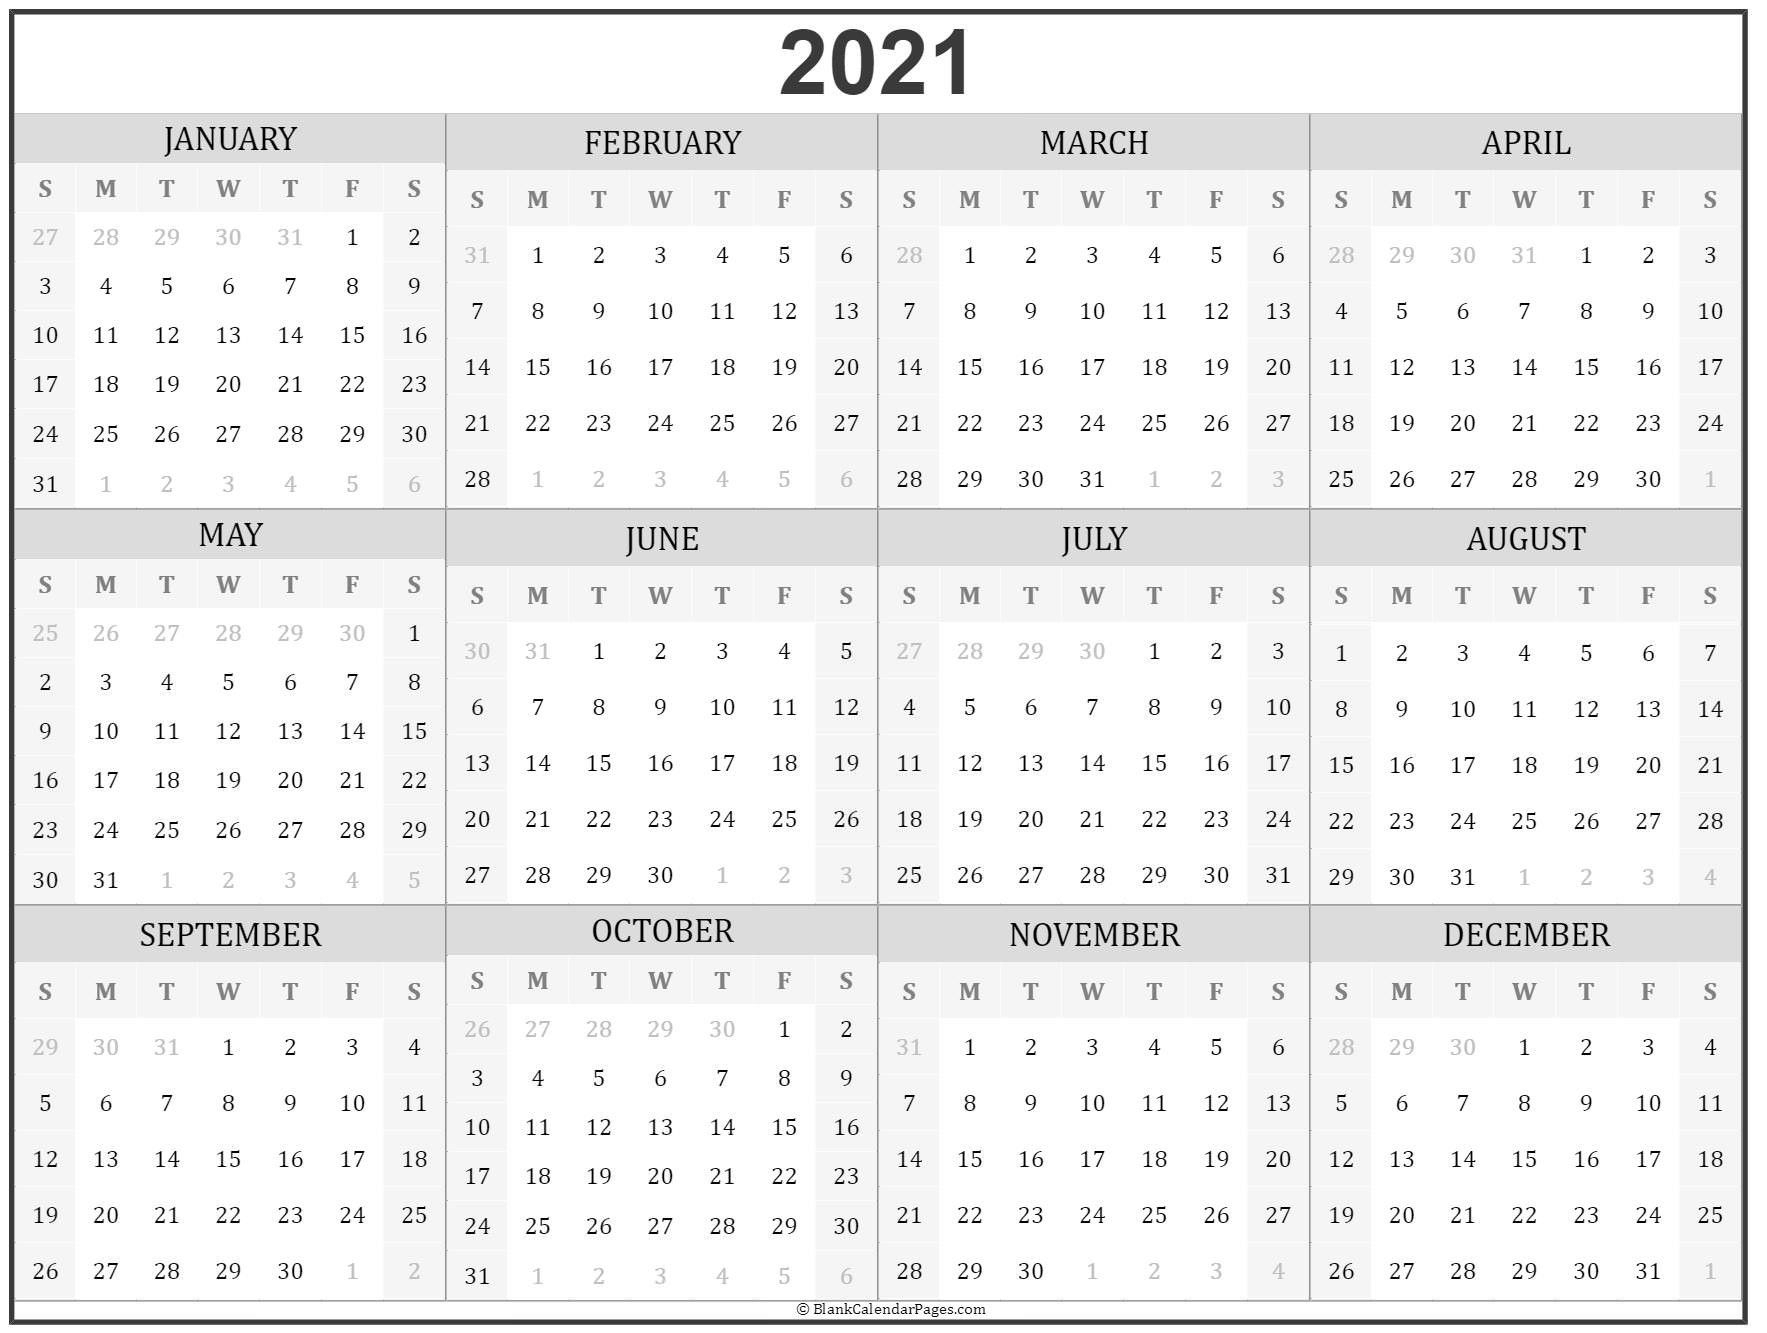 2021 Calendar - Free Download Printable Calendar Templates